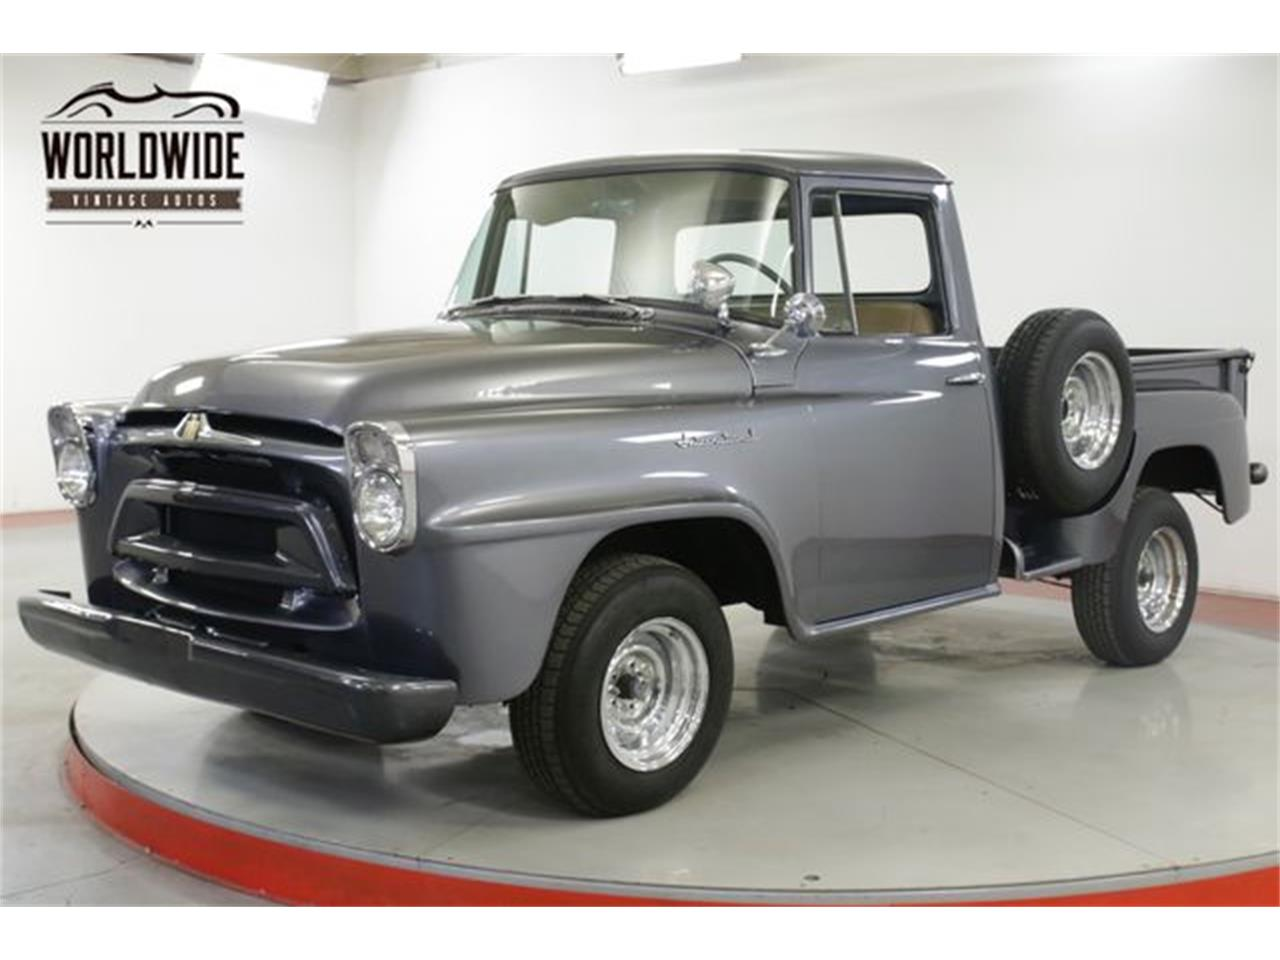 Large Picture of '58 International Pickup located in Colorado - $19,900.00 - R1LO